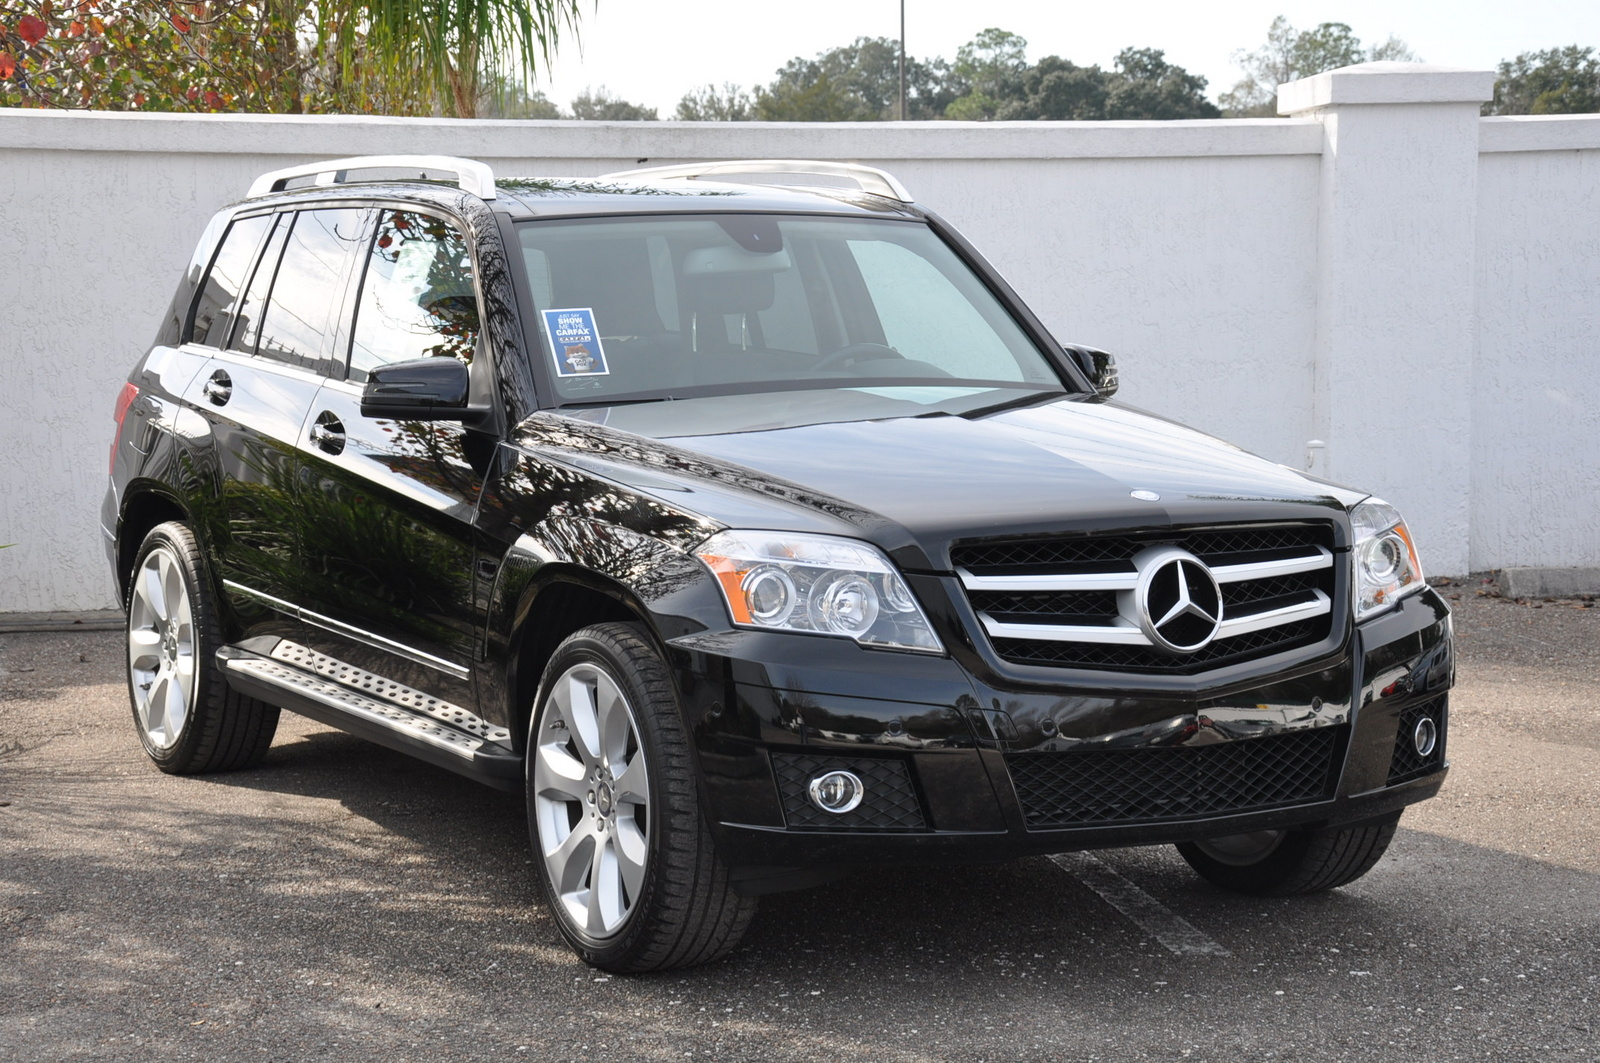 2010 mercedes benz glk 350 reviews autos post. Black Bedroom Furniture Sets. Home Design Ideas